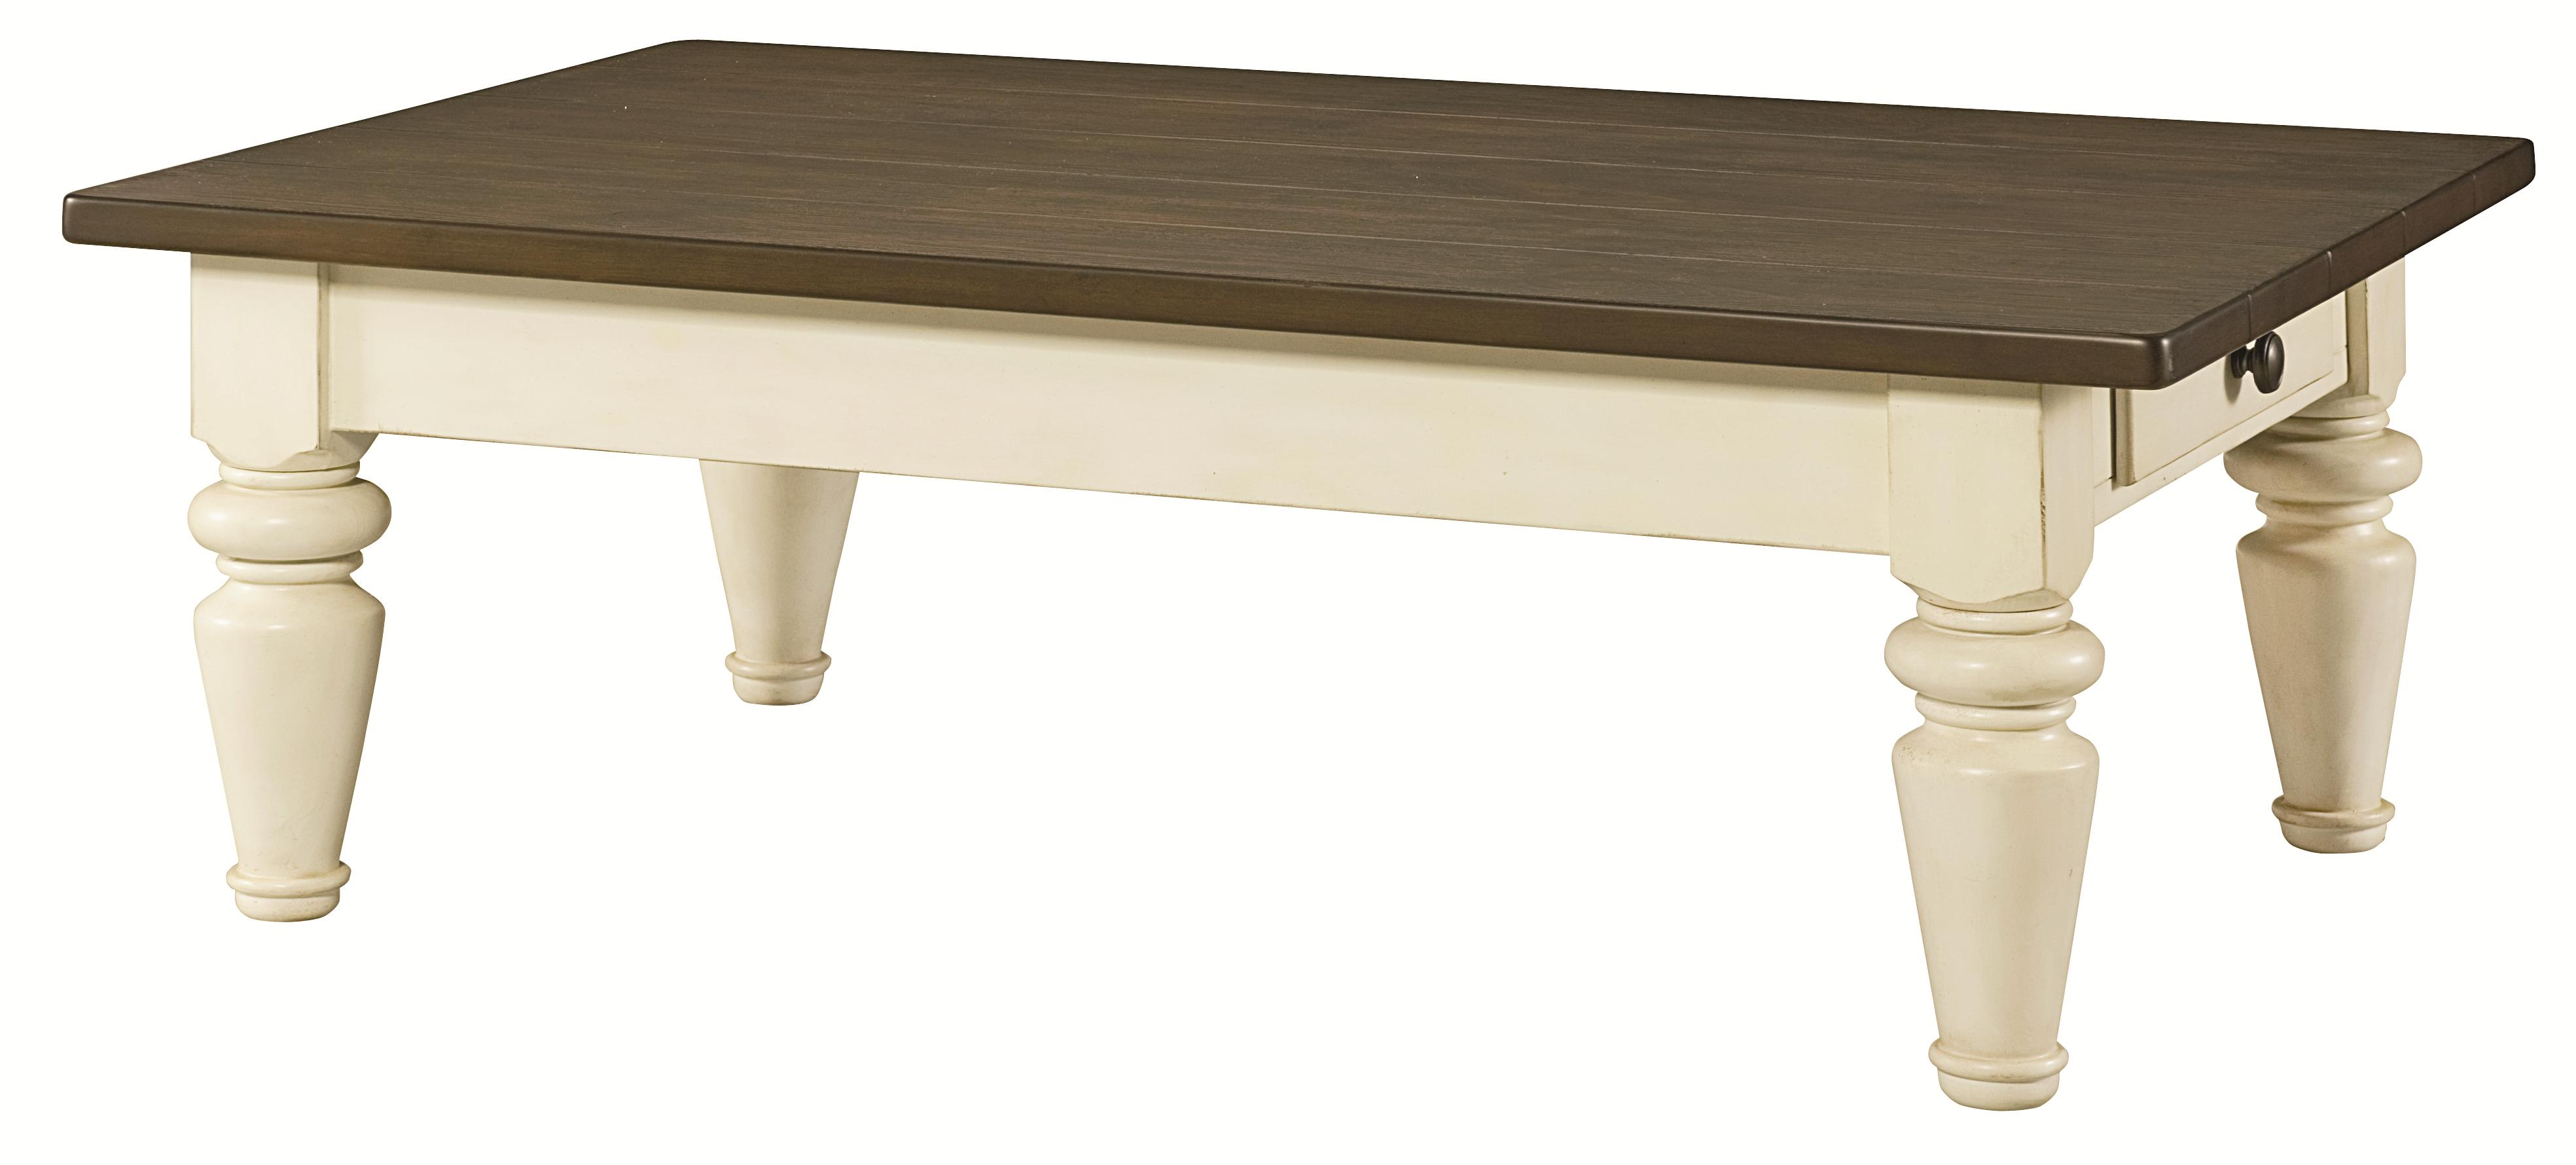 Hammary Heartland Rectangular Cocktail Table With Drawer On Each Side Wayside Furniture